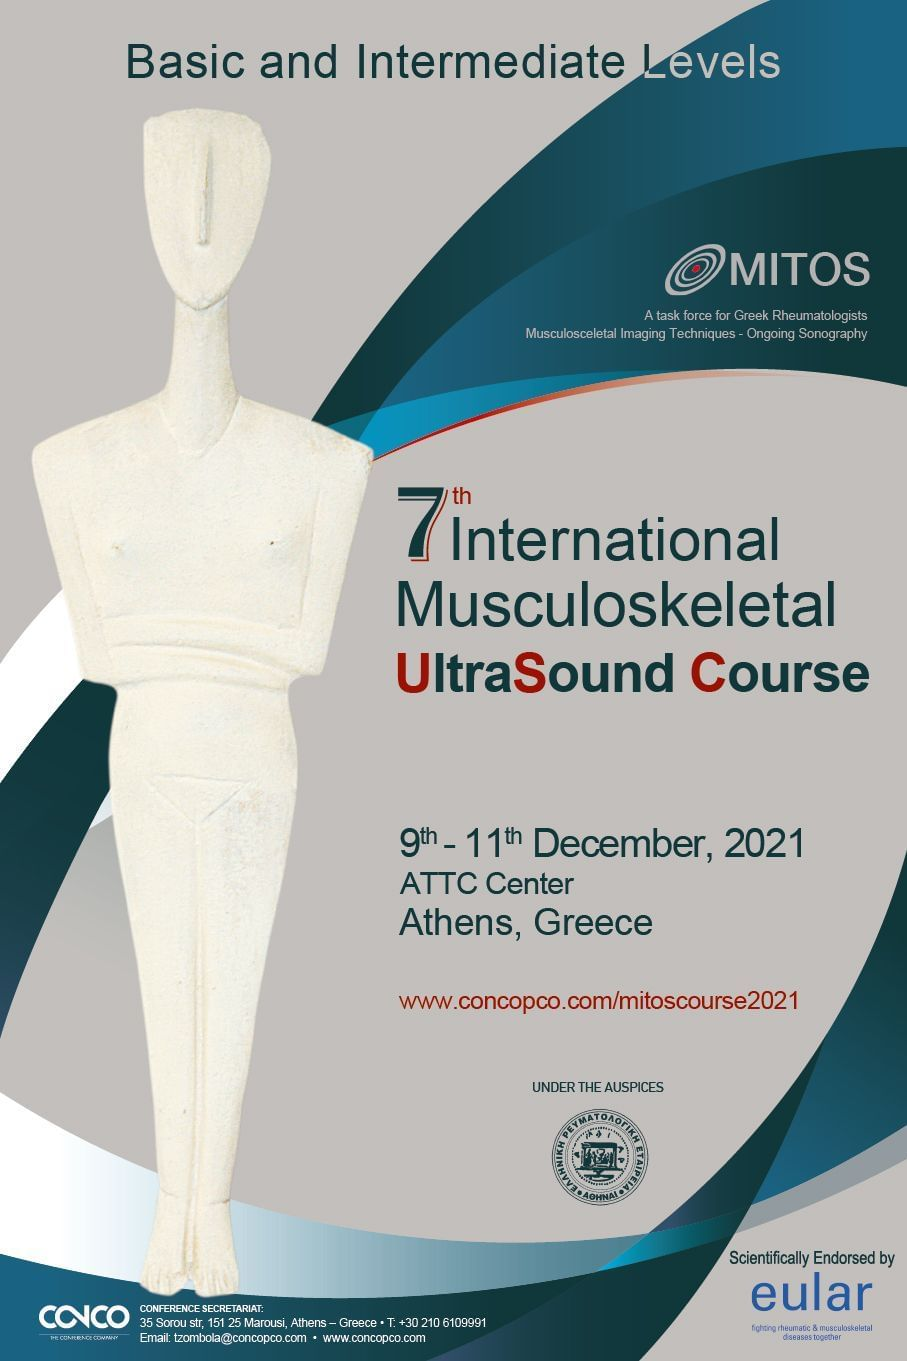 7th INTERNATIONAL MUSCULOSKELETAL ULTRASOUND COURSE